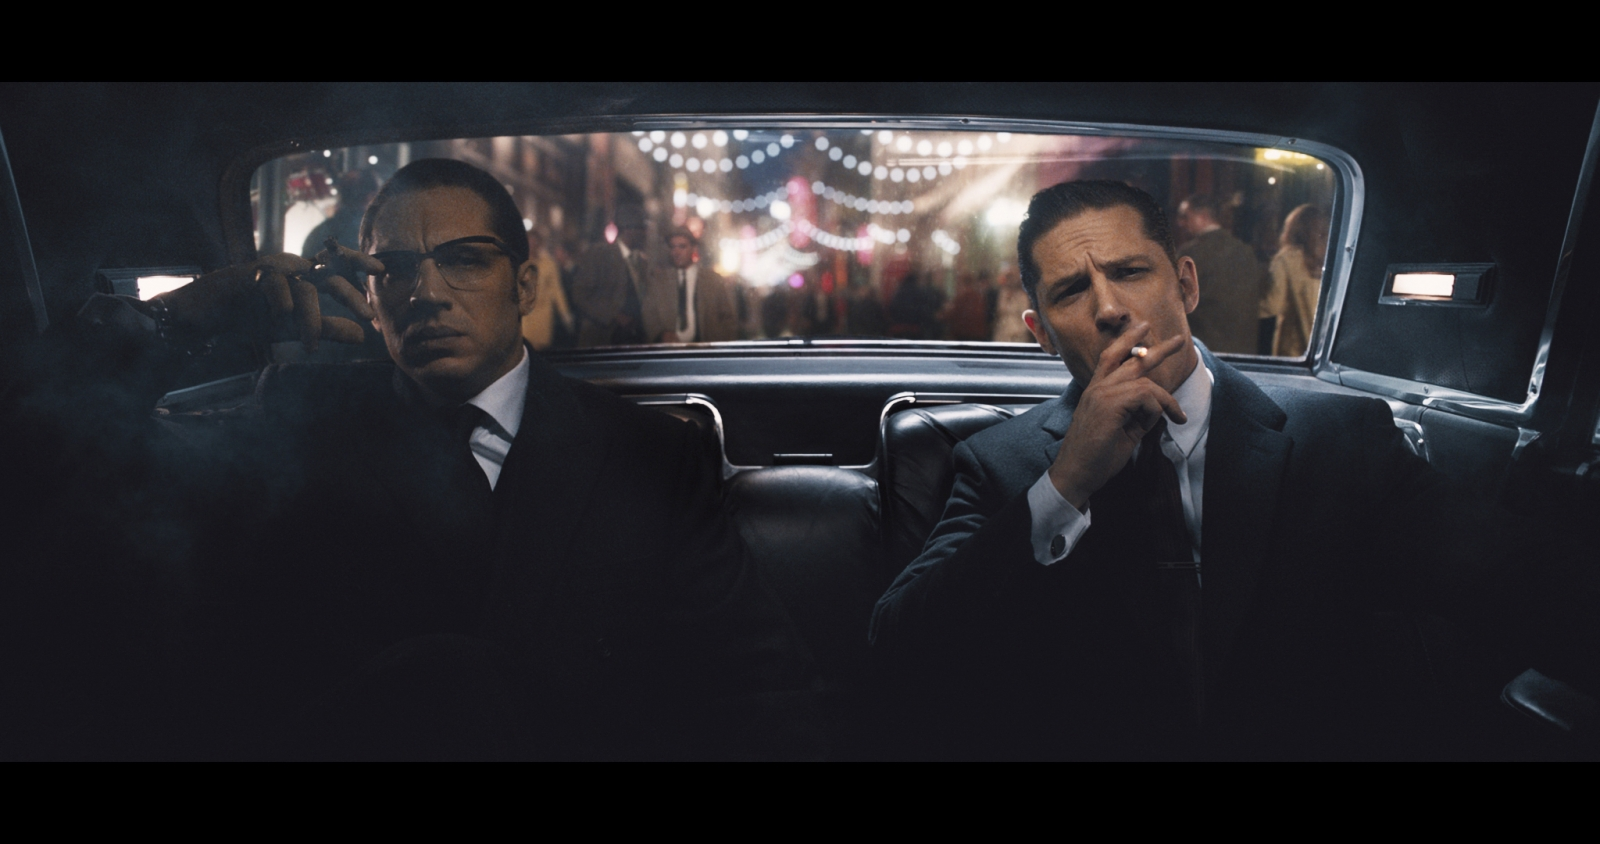 Tom Hardy as Ronnie Kray Reggie Kray